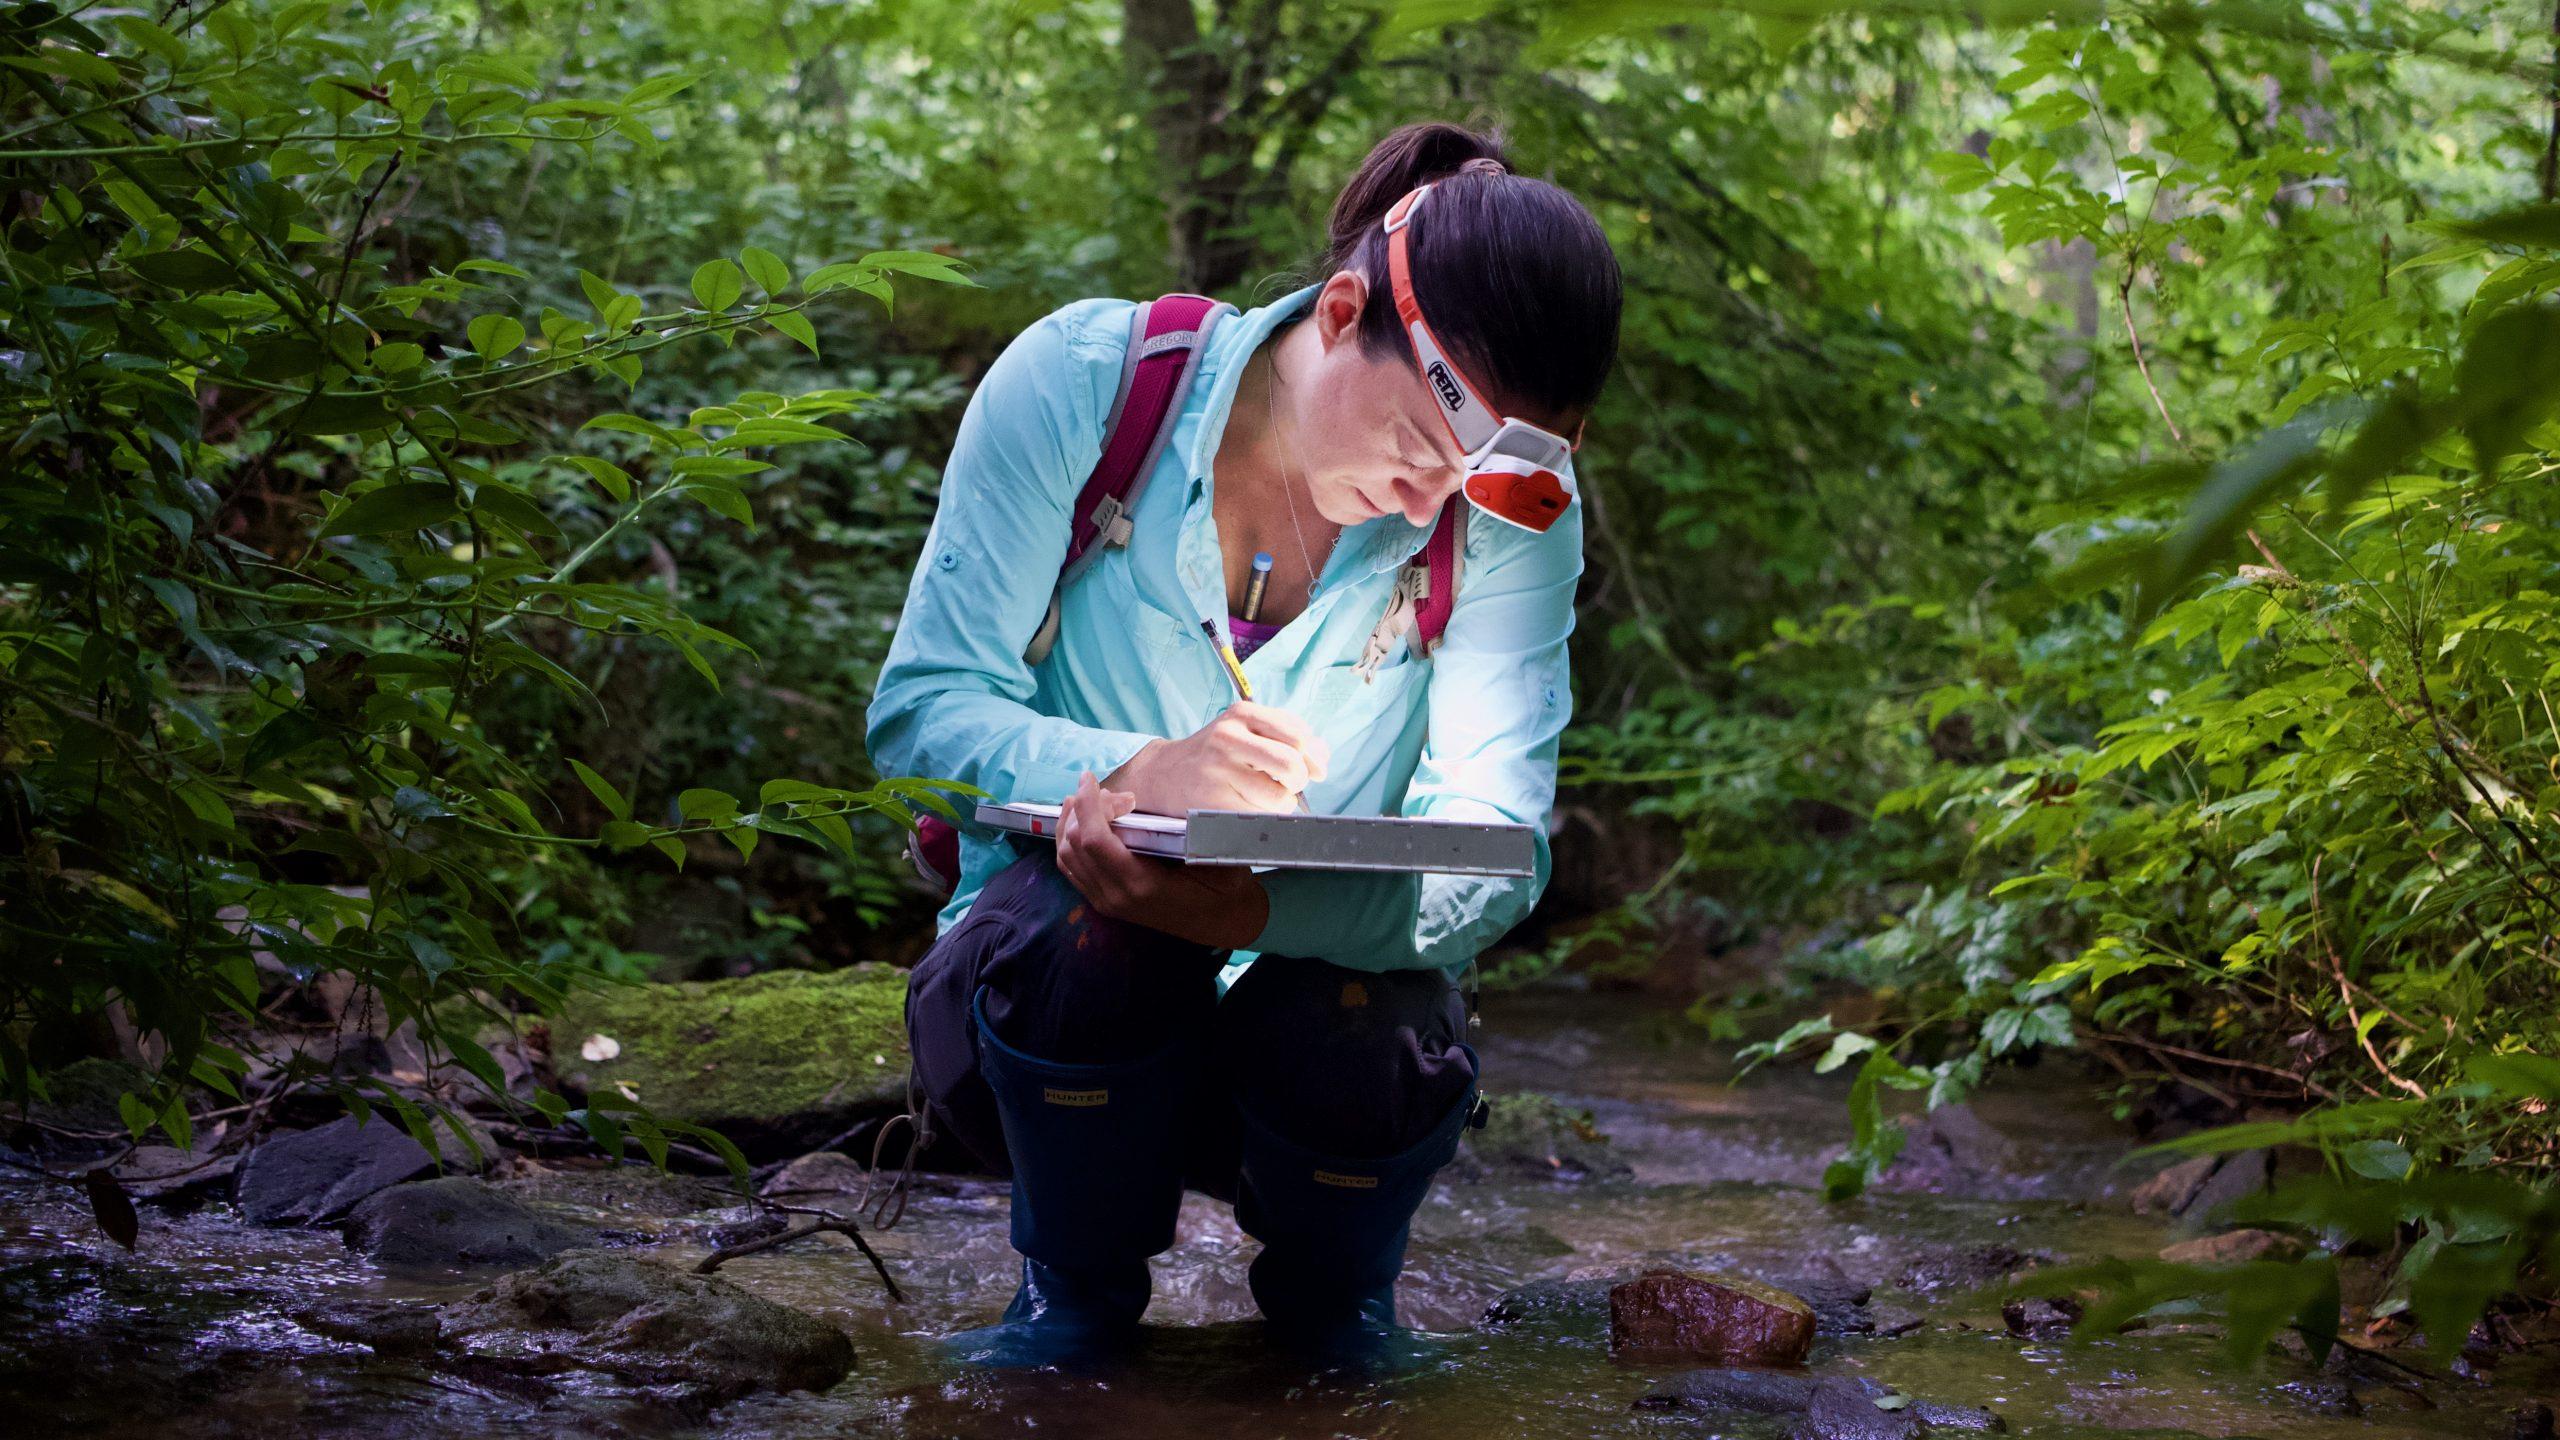 Aquatic research and stream ecology